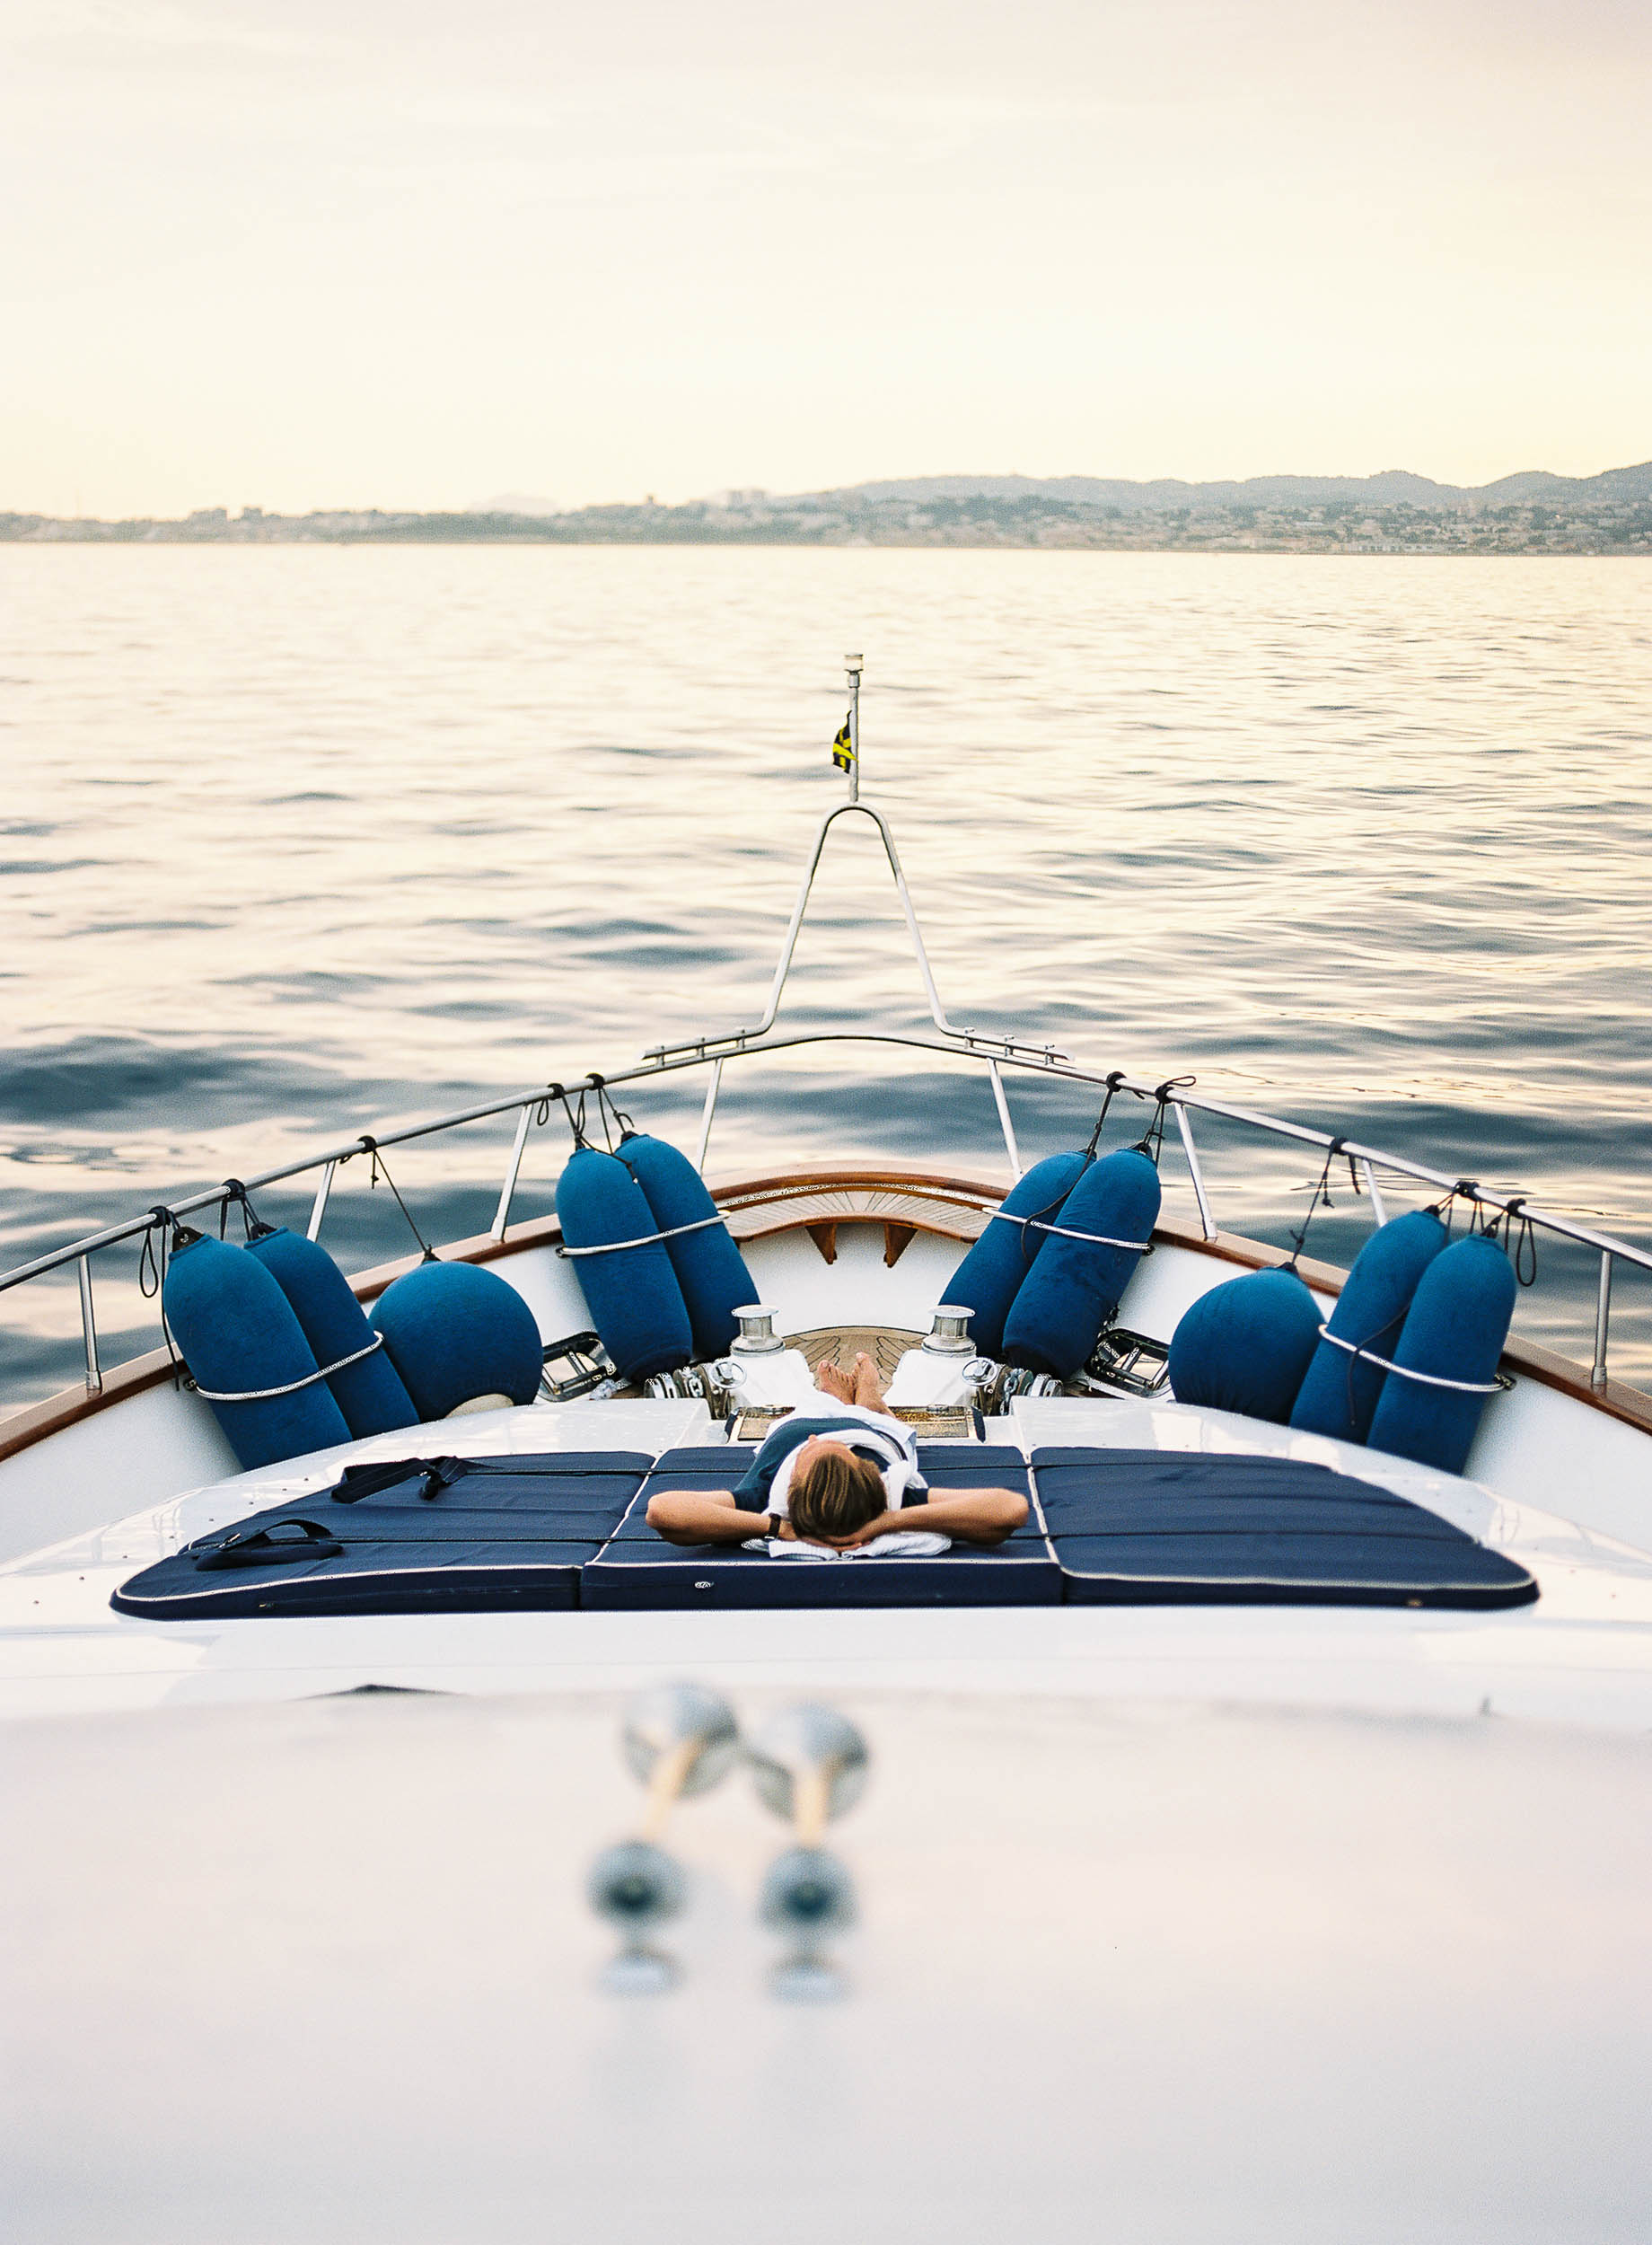 Amy O'Boyle Photography- Destination & UK Fine Art Film Wedding Photographer- South Of France St Tropez Yacht Hotel Du Cap Eden Roc-33.jpg